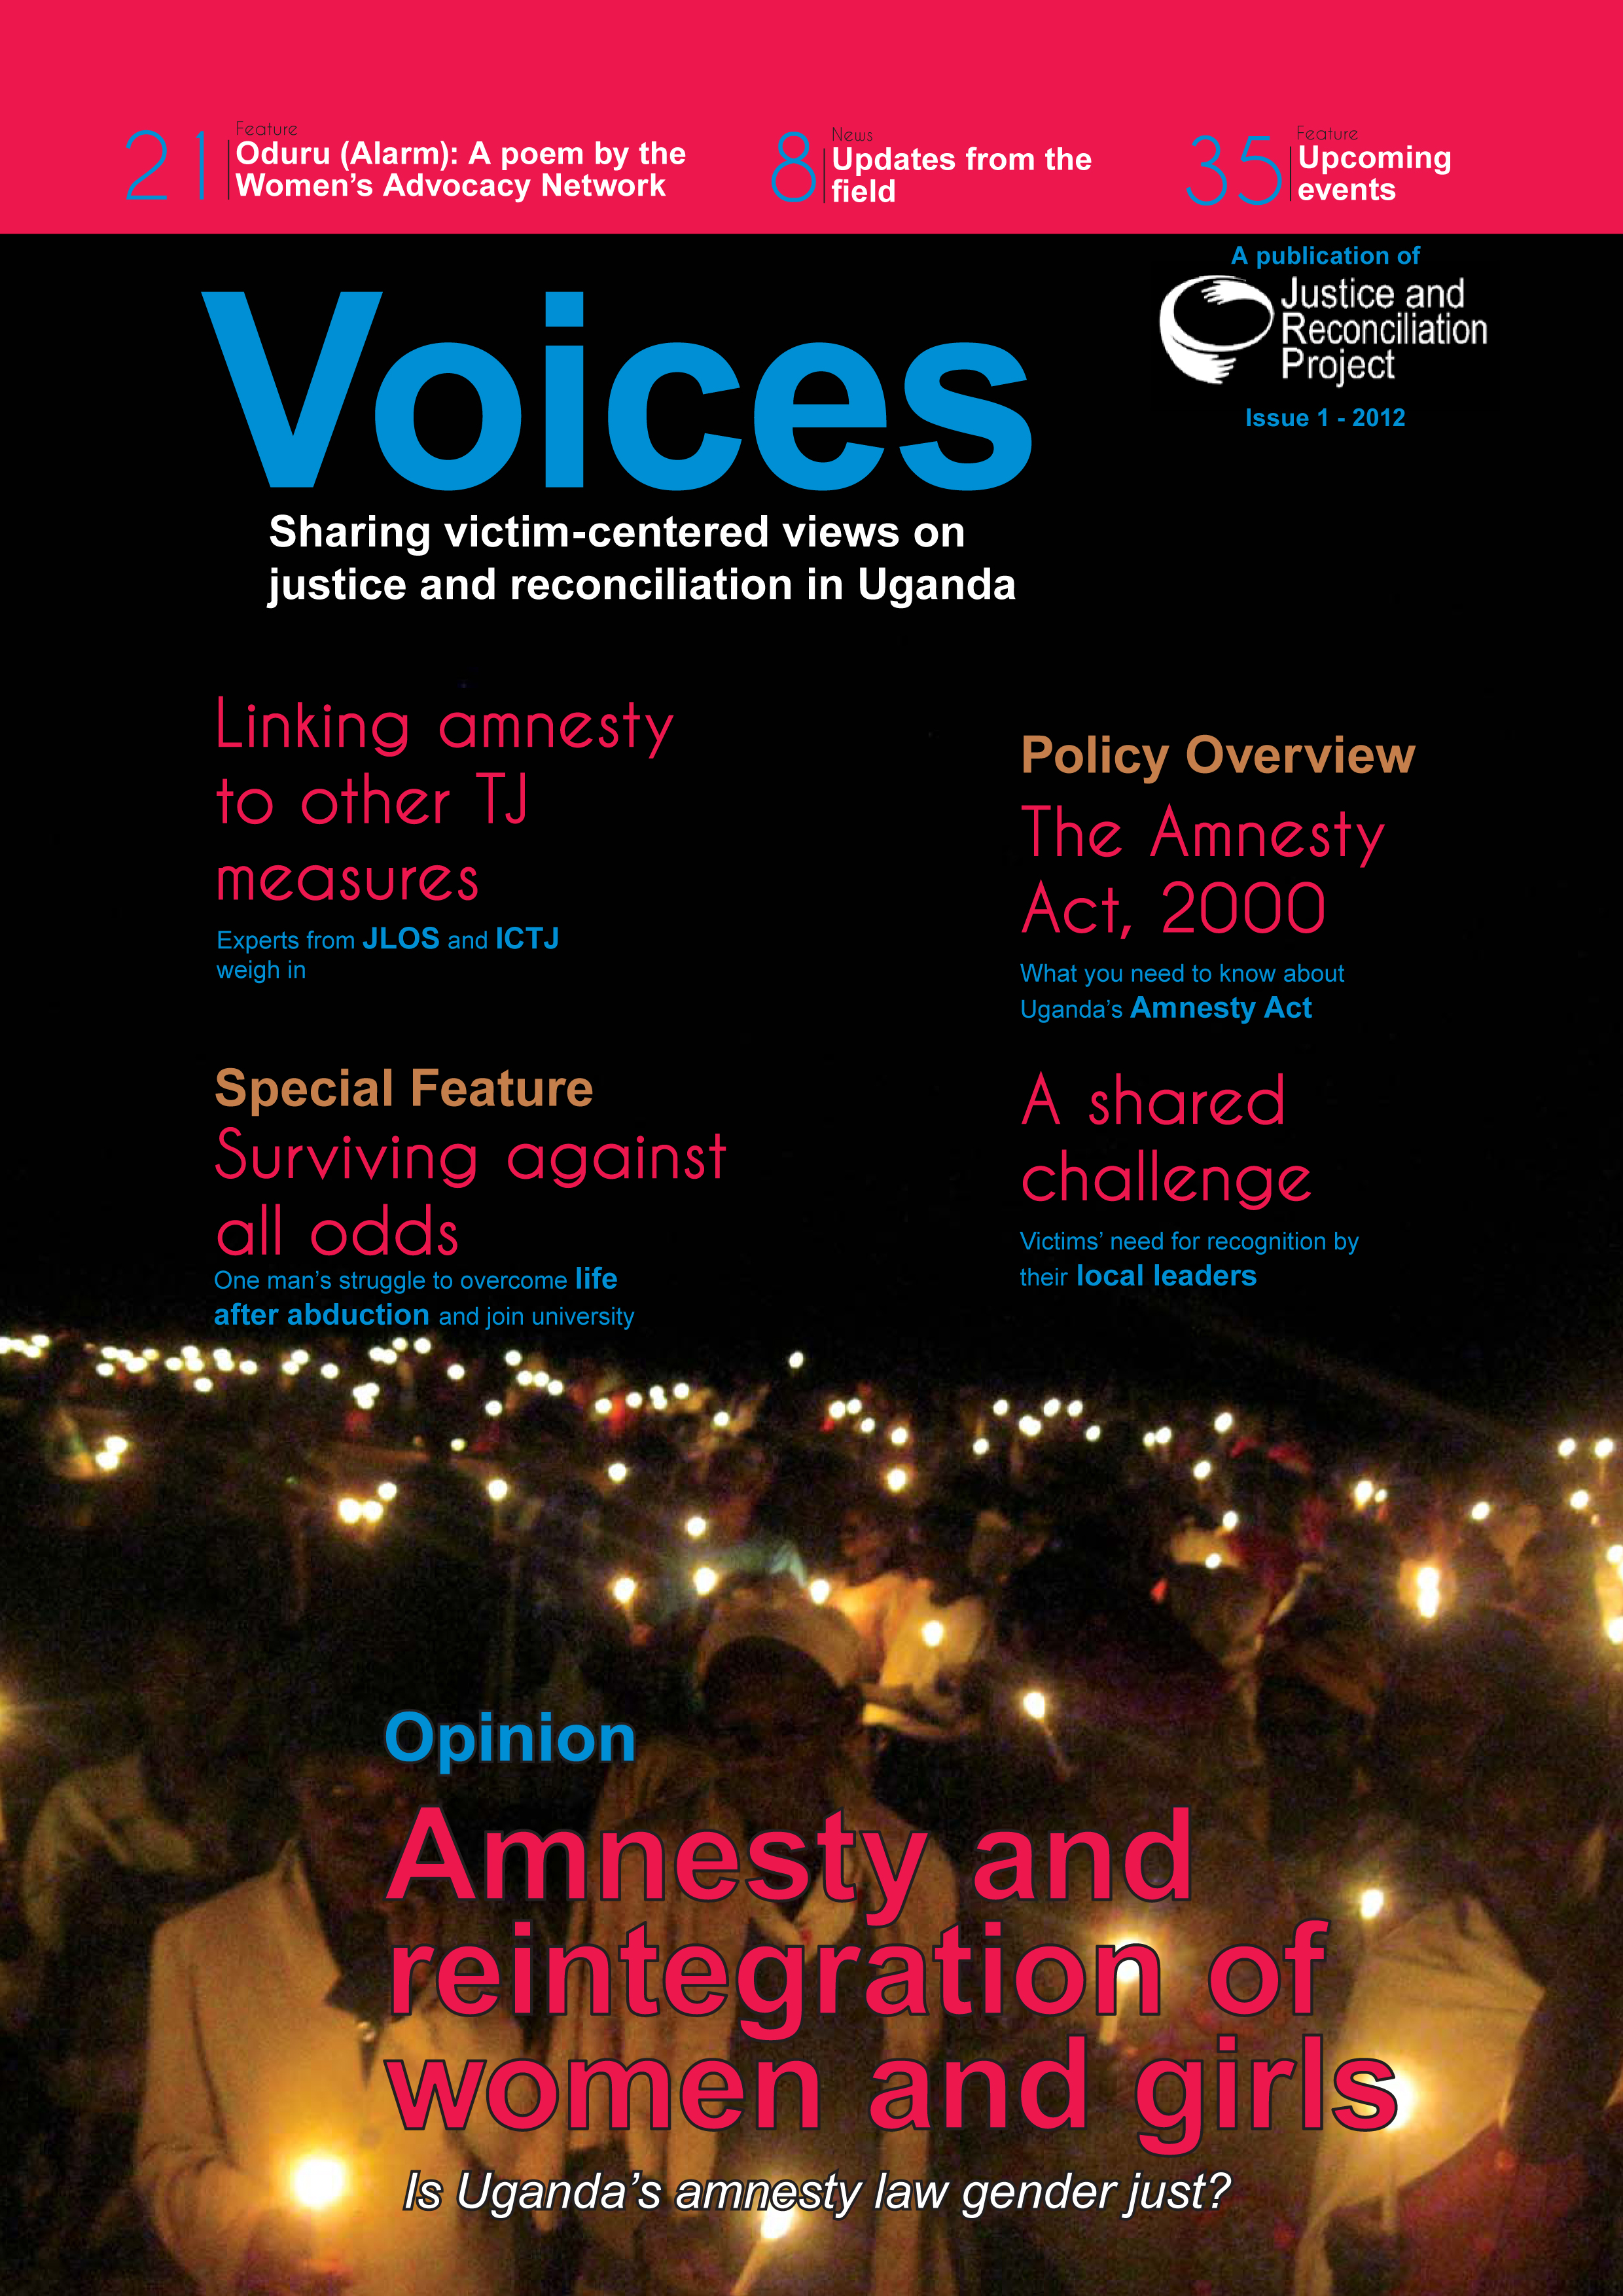 Voices Iss1 2012 cover